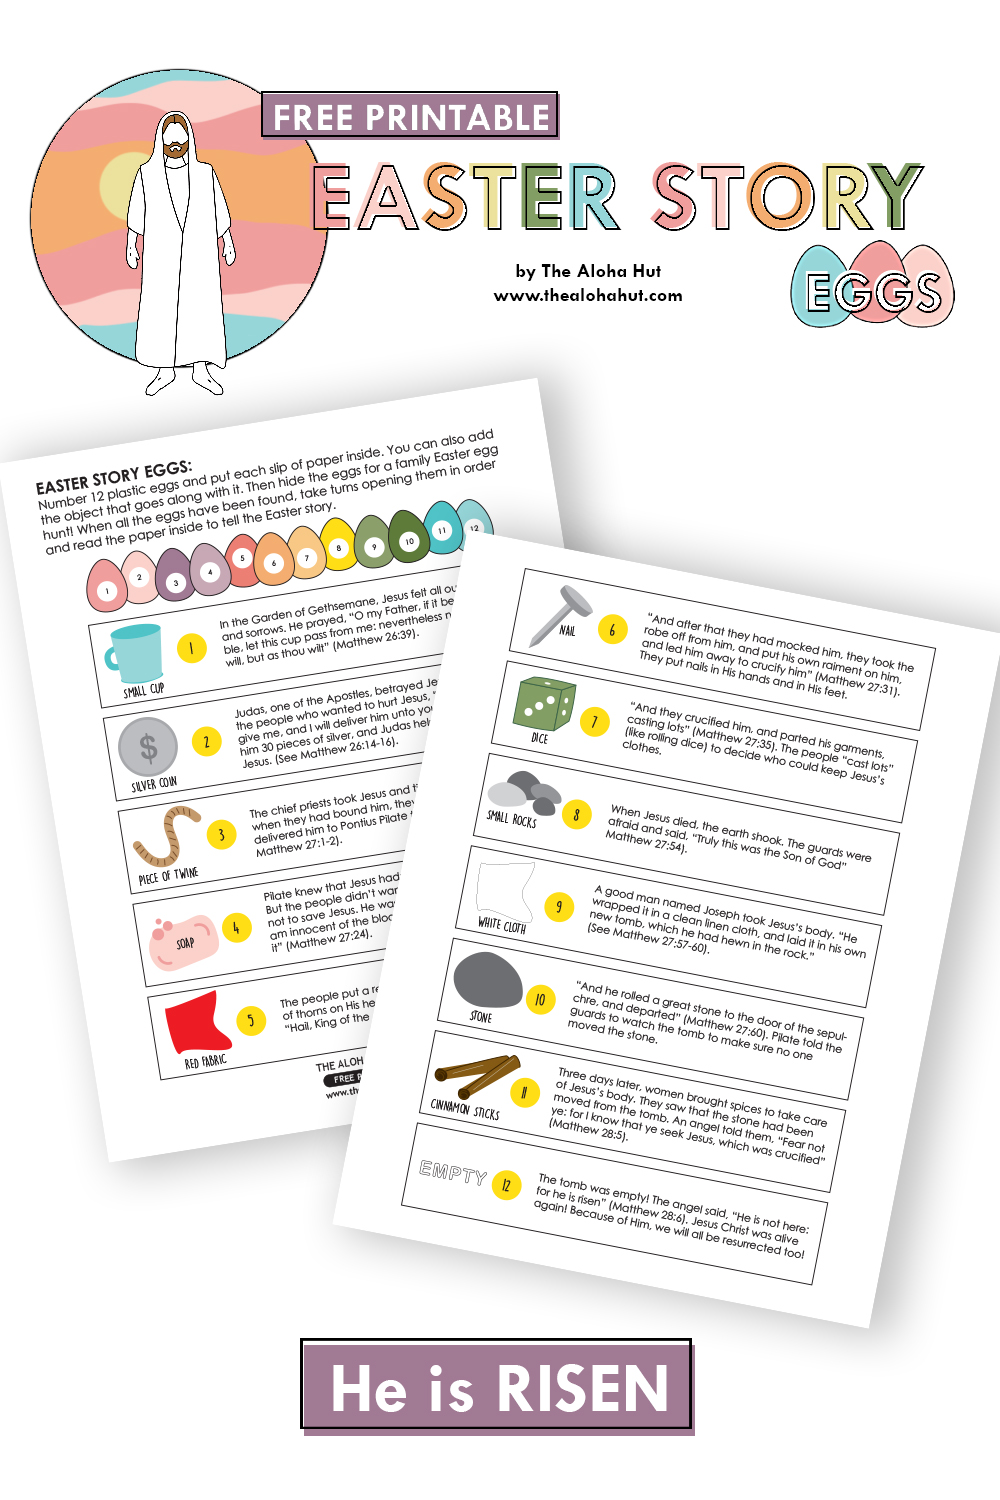 Easter Story Eggs 2 free printable by the Aloha Hut